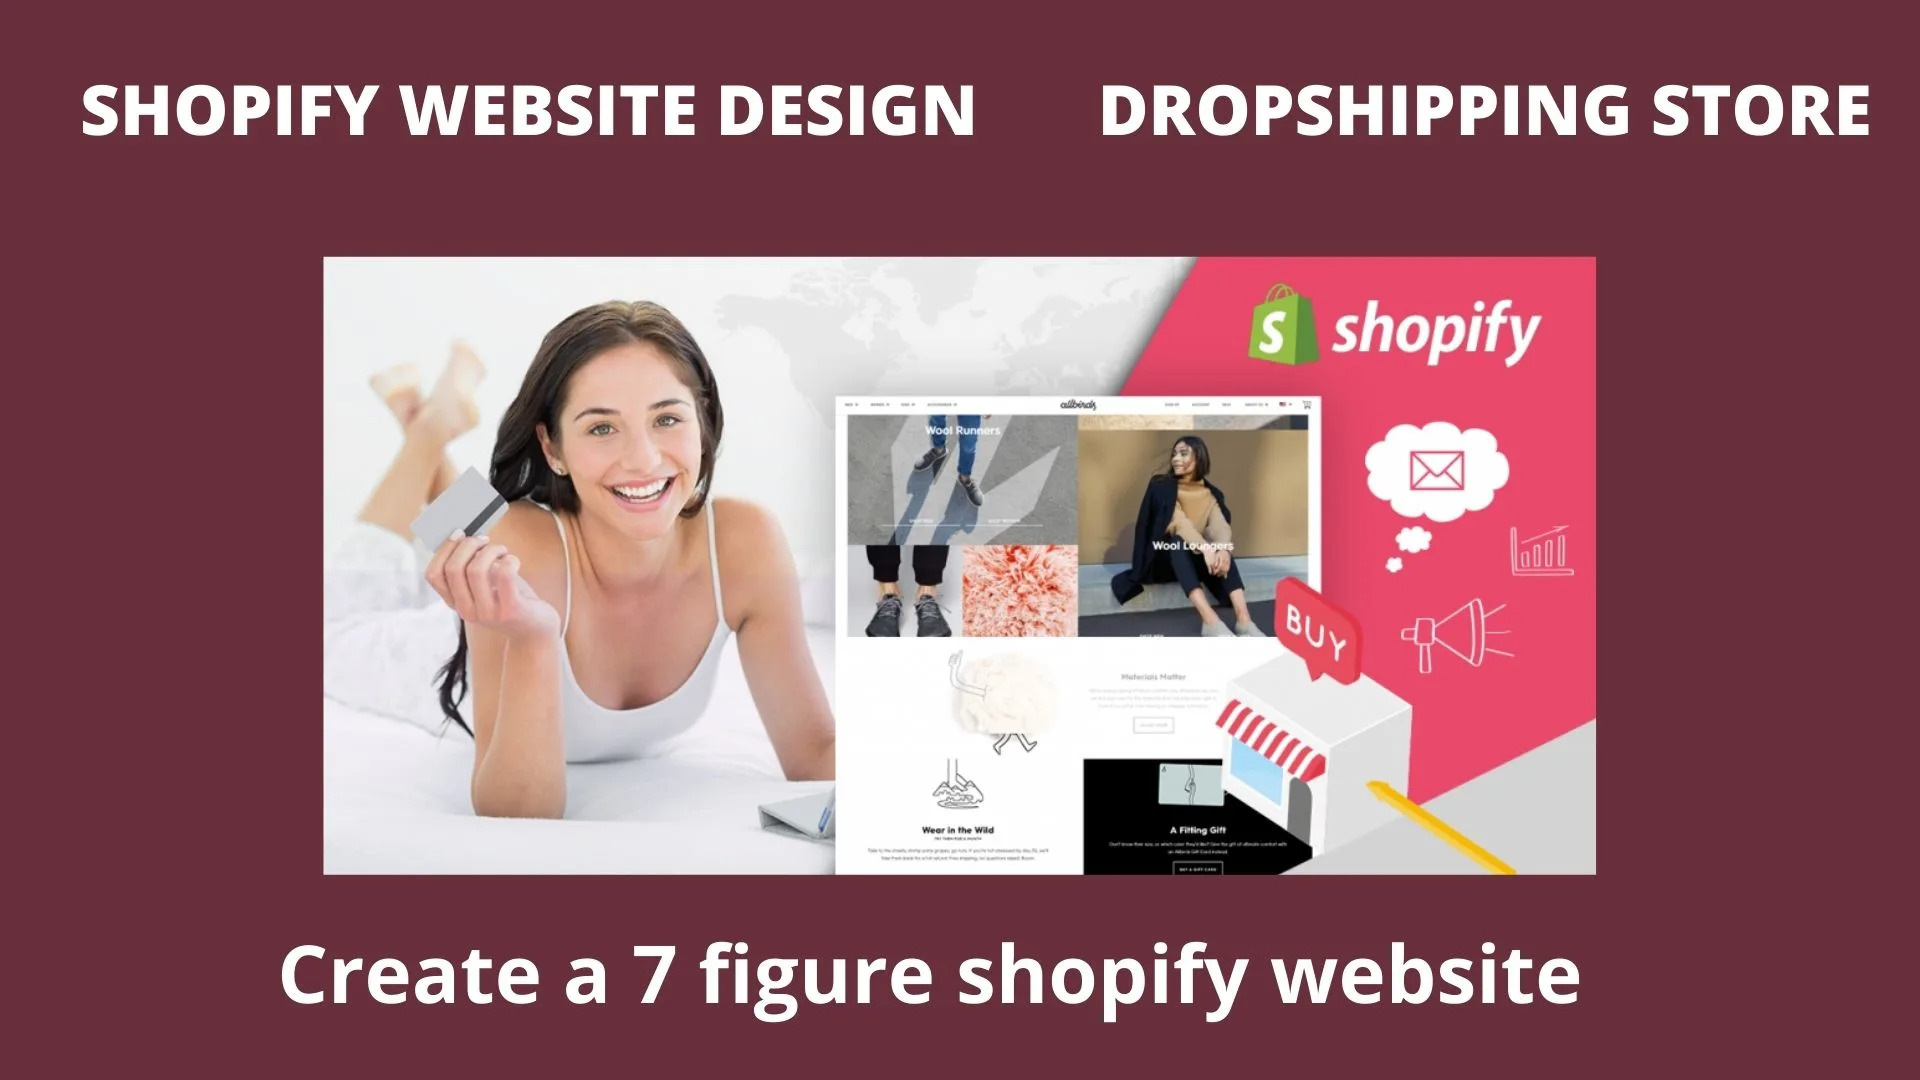 I will create shopify website design, dropshipping store, redesign shopify online store, FiverrBox